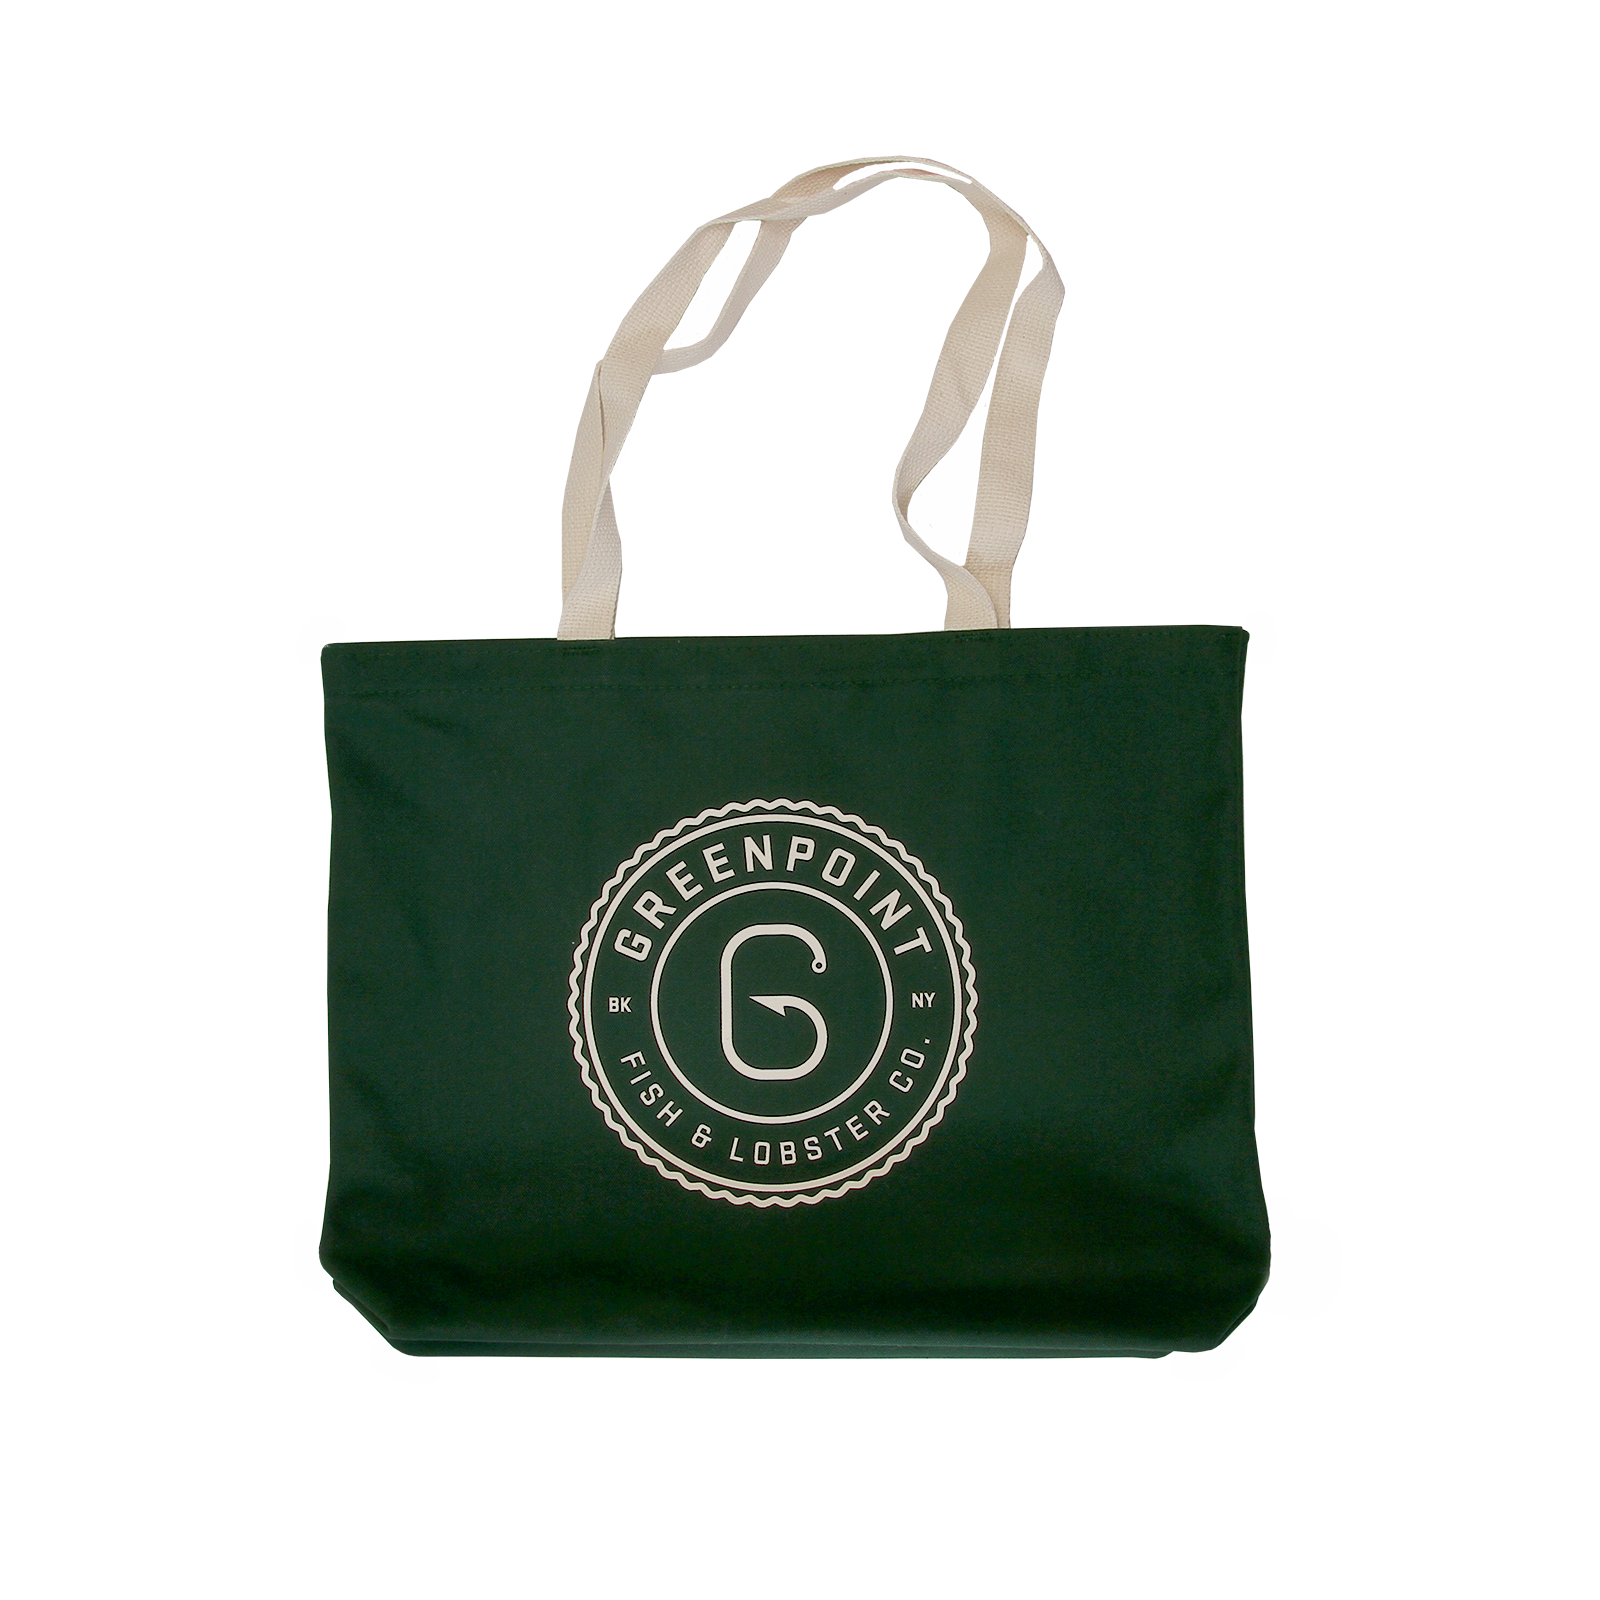 1ee43934d7 Greenpoint Fish   Lobster Co. - Greenpoint Heavyweight Tote Bag